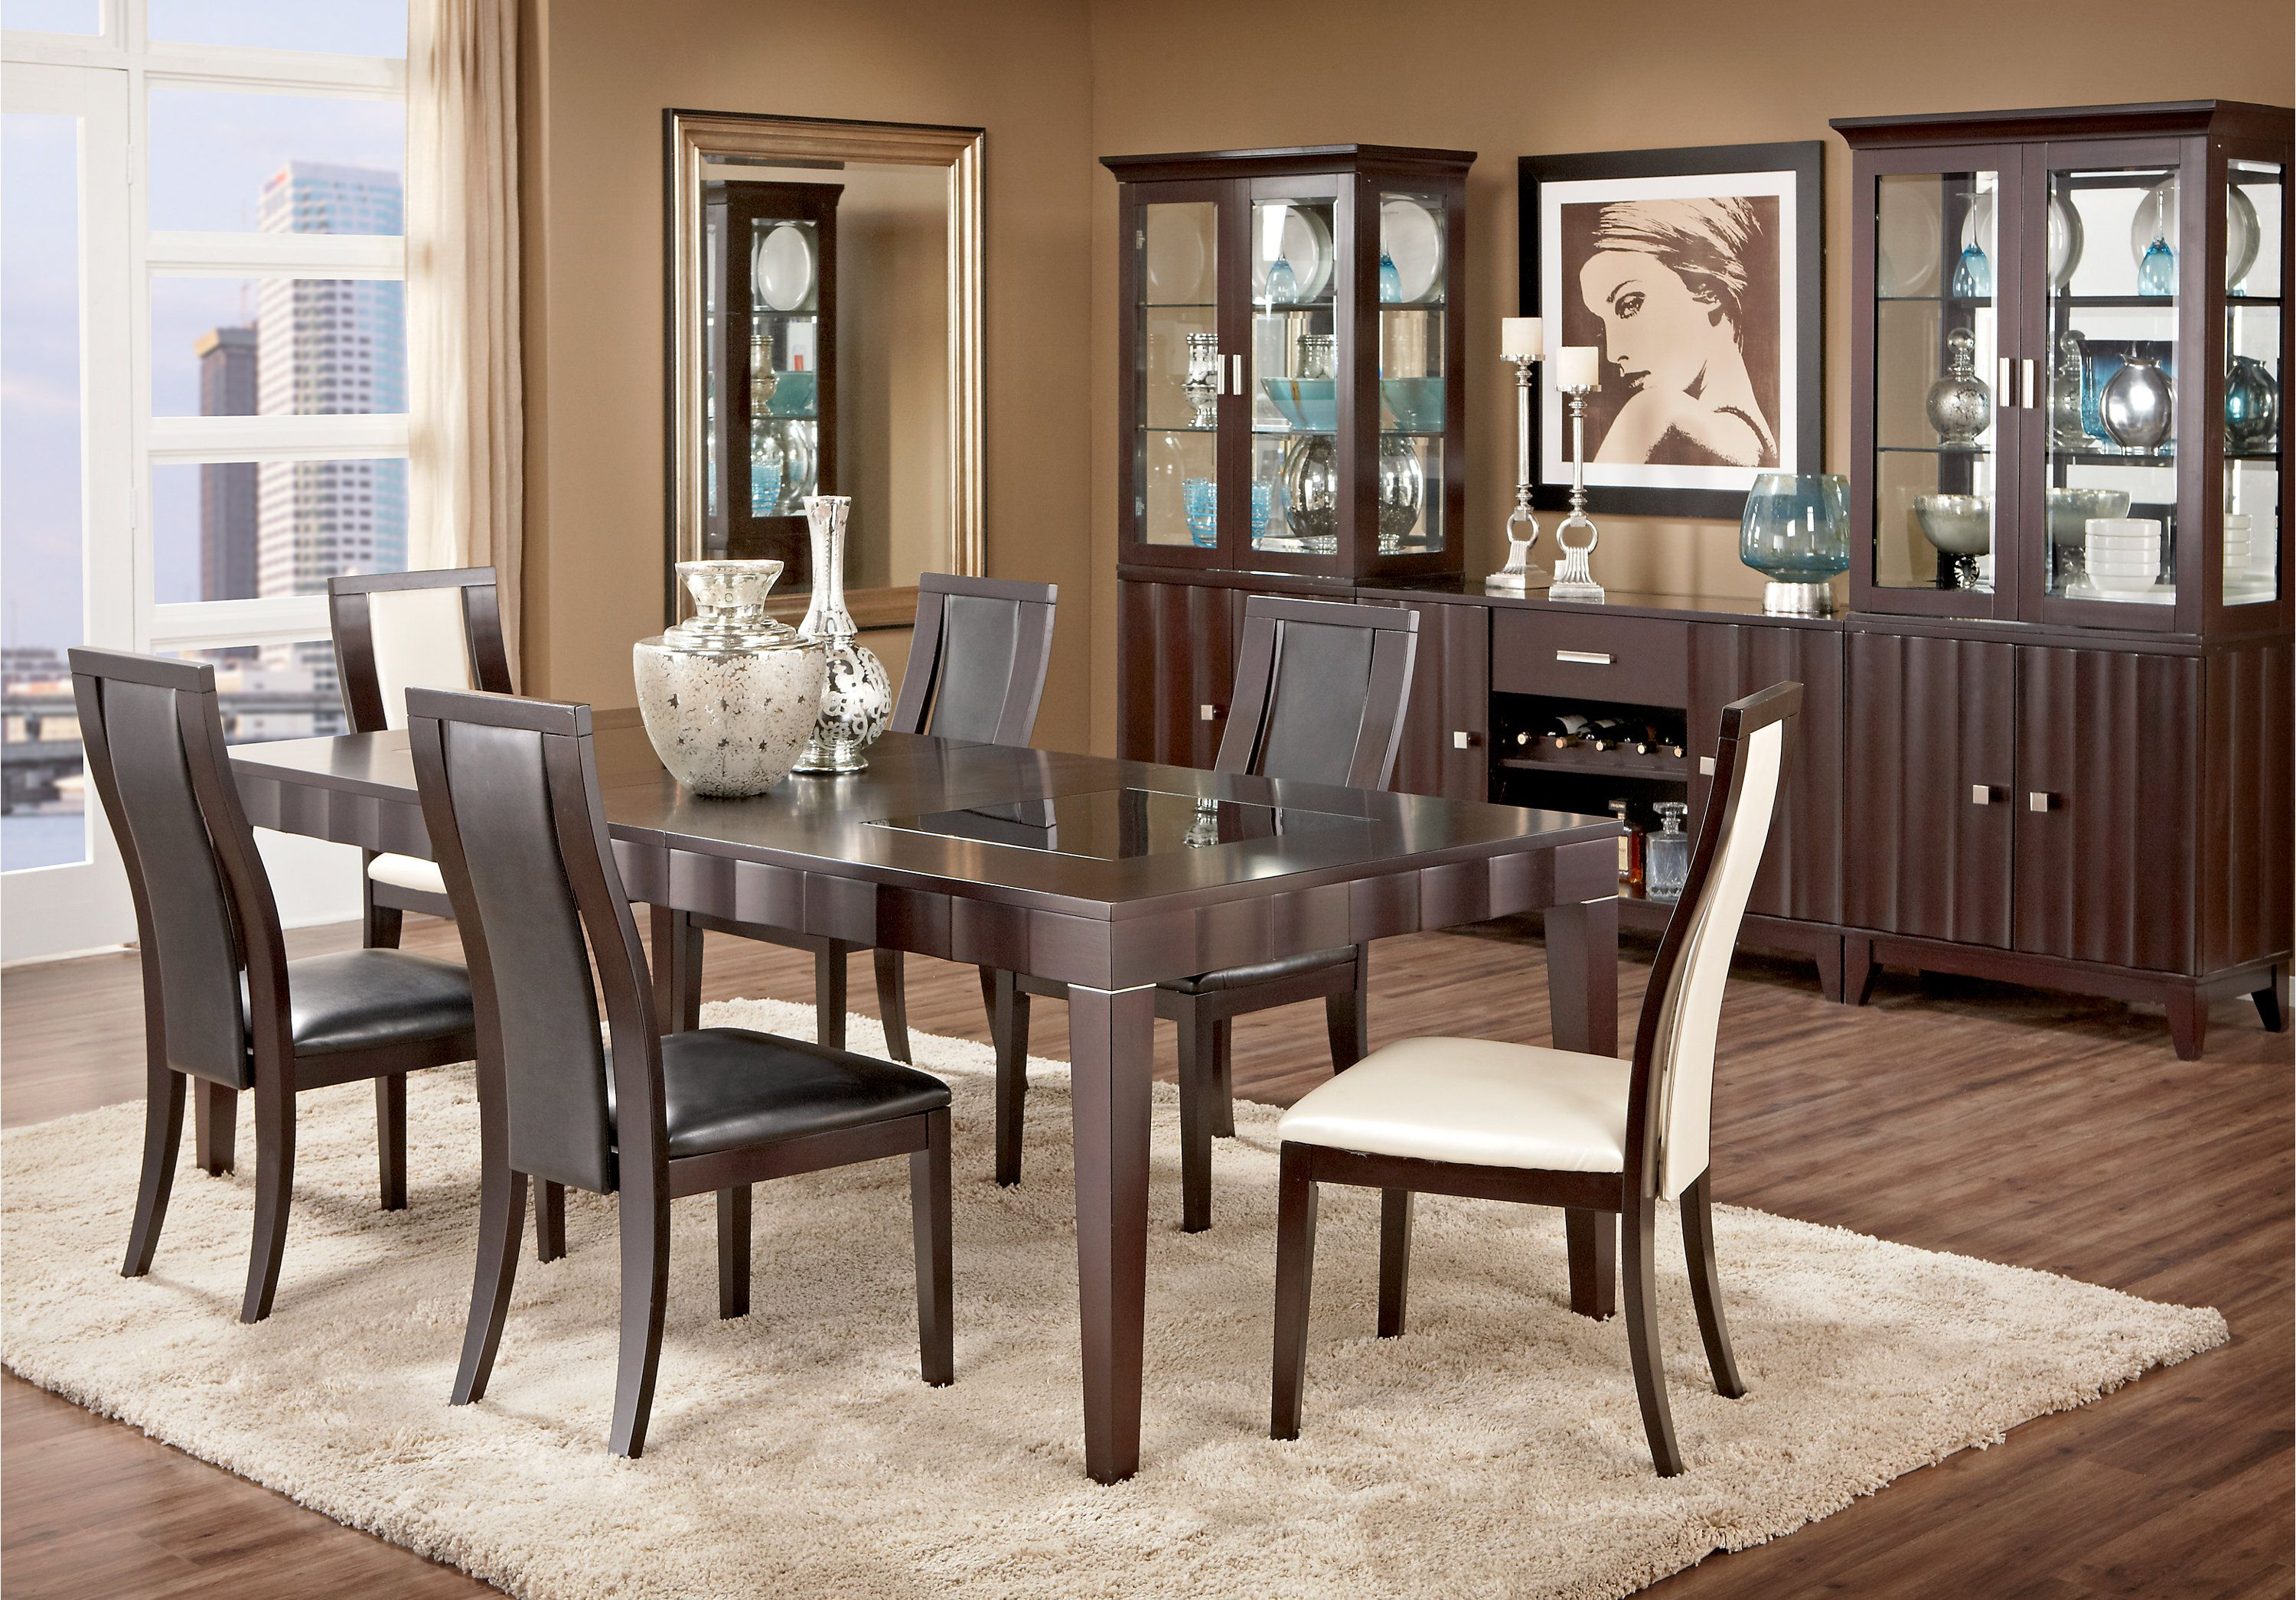 Picture Of Mondavi Espresso 5 Pc Dining Room W Black Chairs From